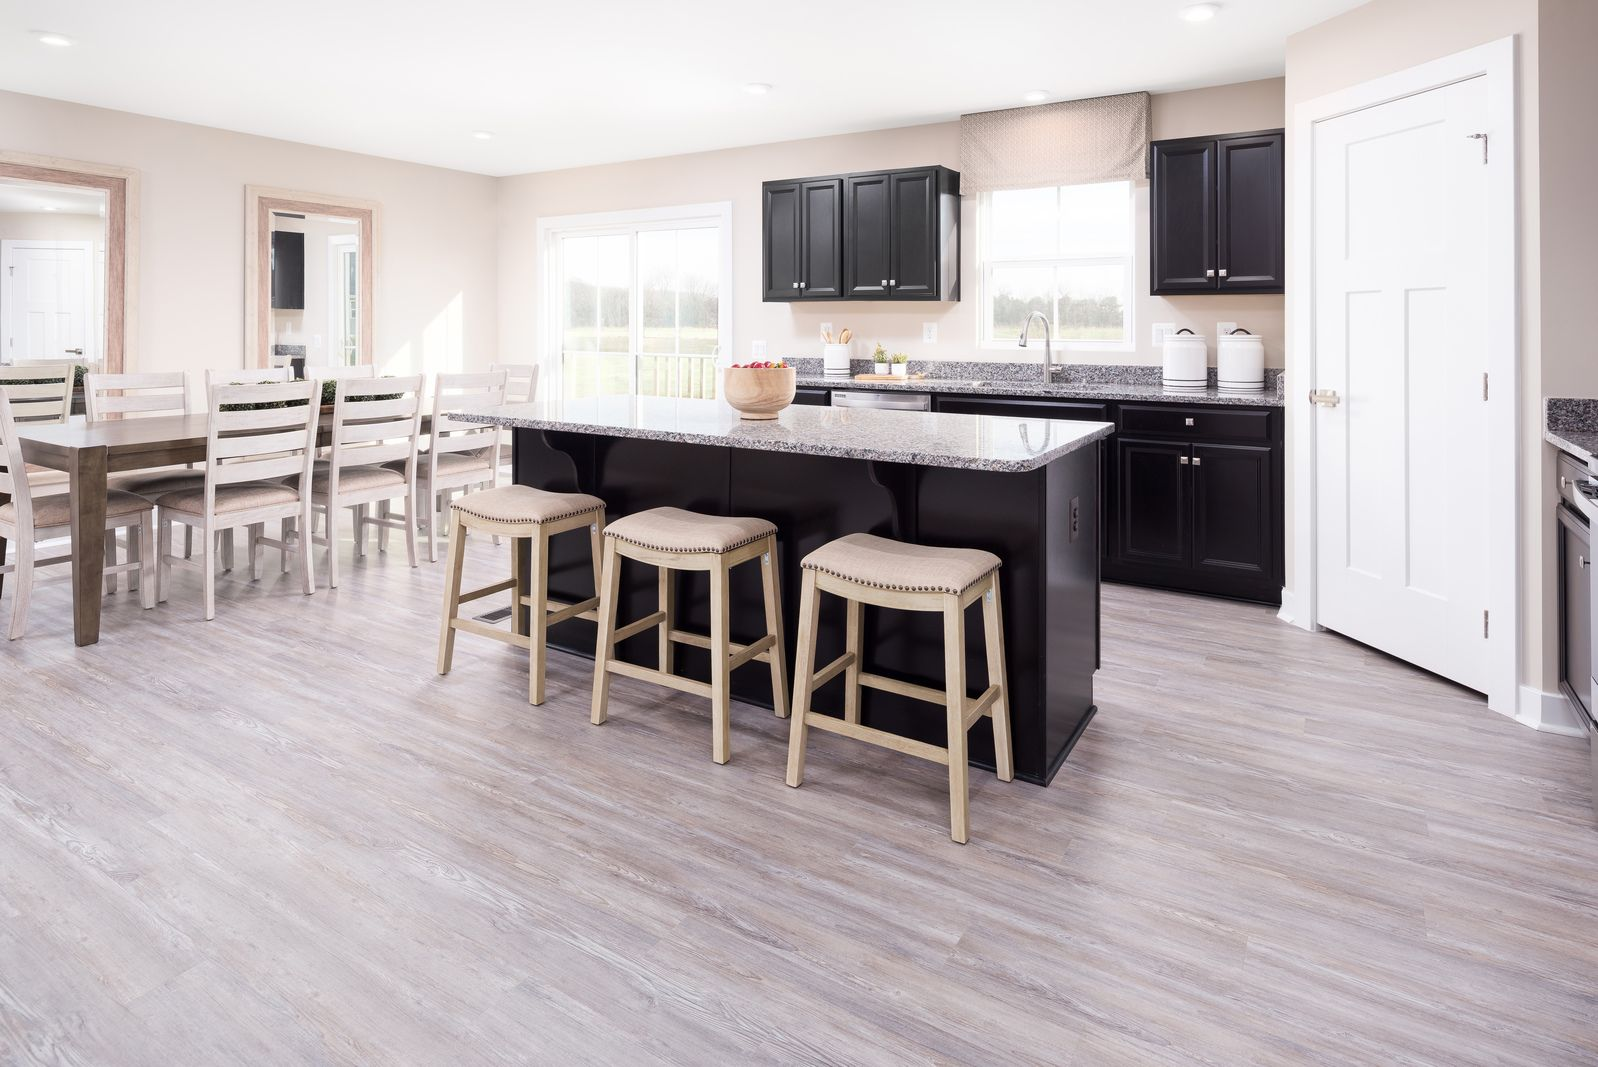 Kitchen featured in the Eden Cay w/ Full Basement By Ryan Homes in Cincinnati, OH